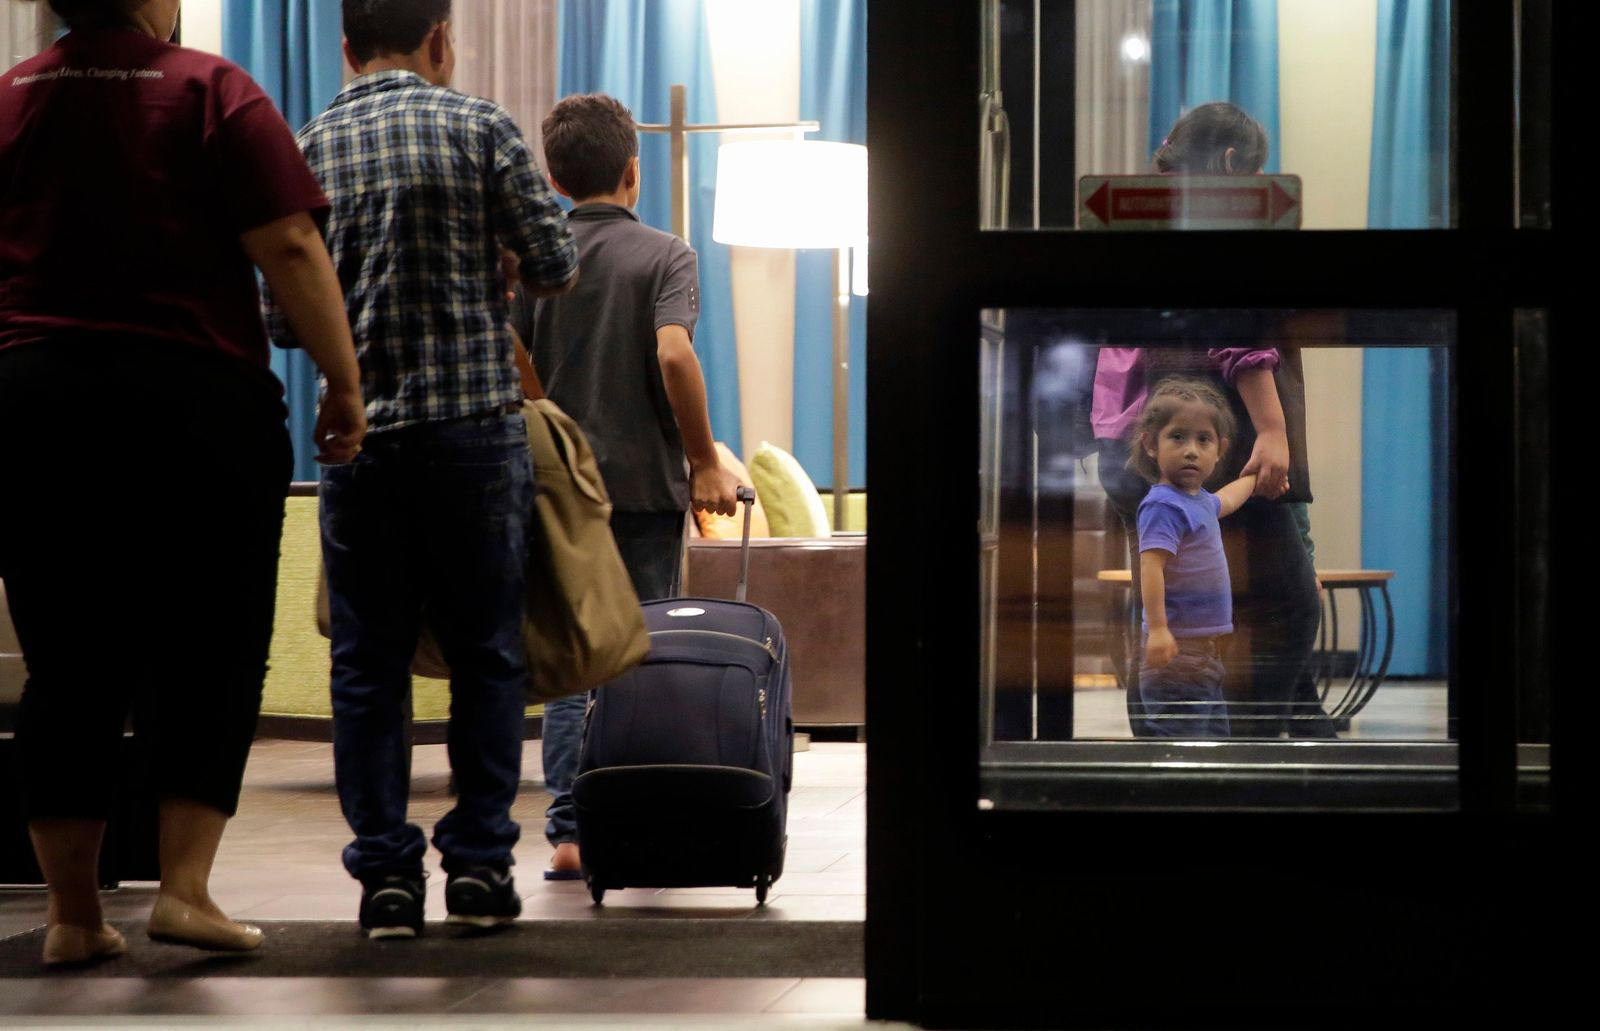 In this Monday, July 23, 2018, file photo, immigrants seeking asylum who were recently reunited arrive at a hotel, in San Antonio. (AP Photo/Eric Gay, File)